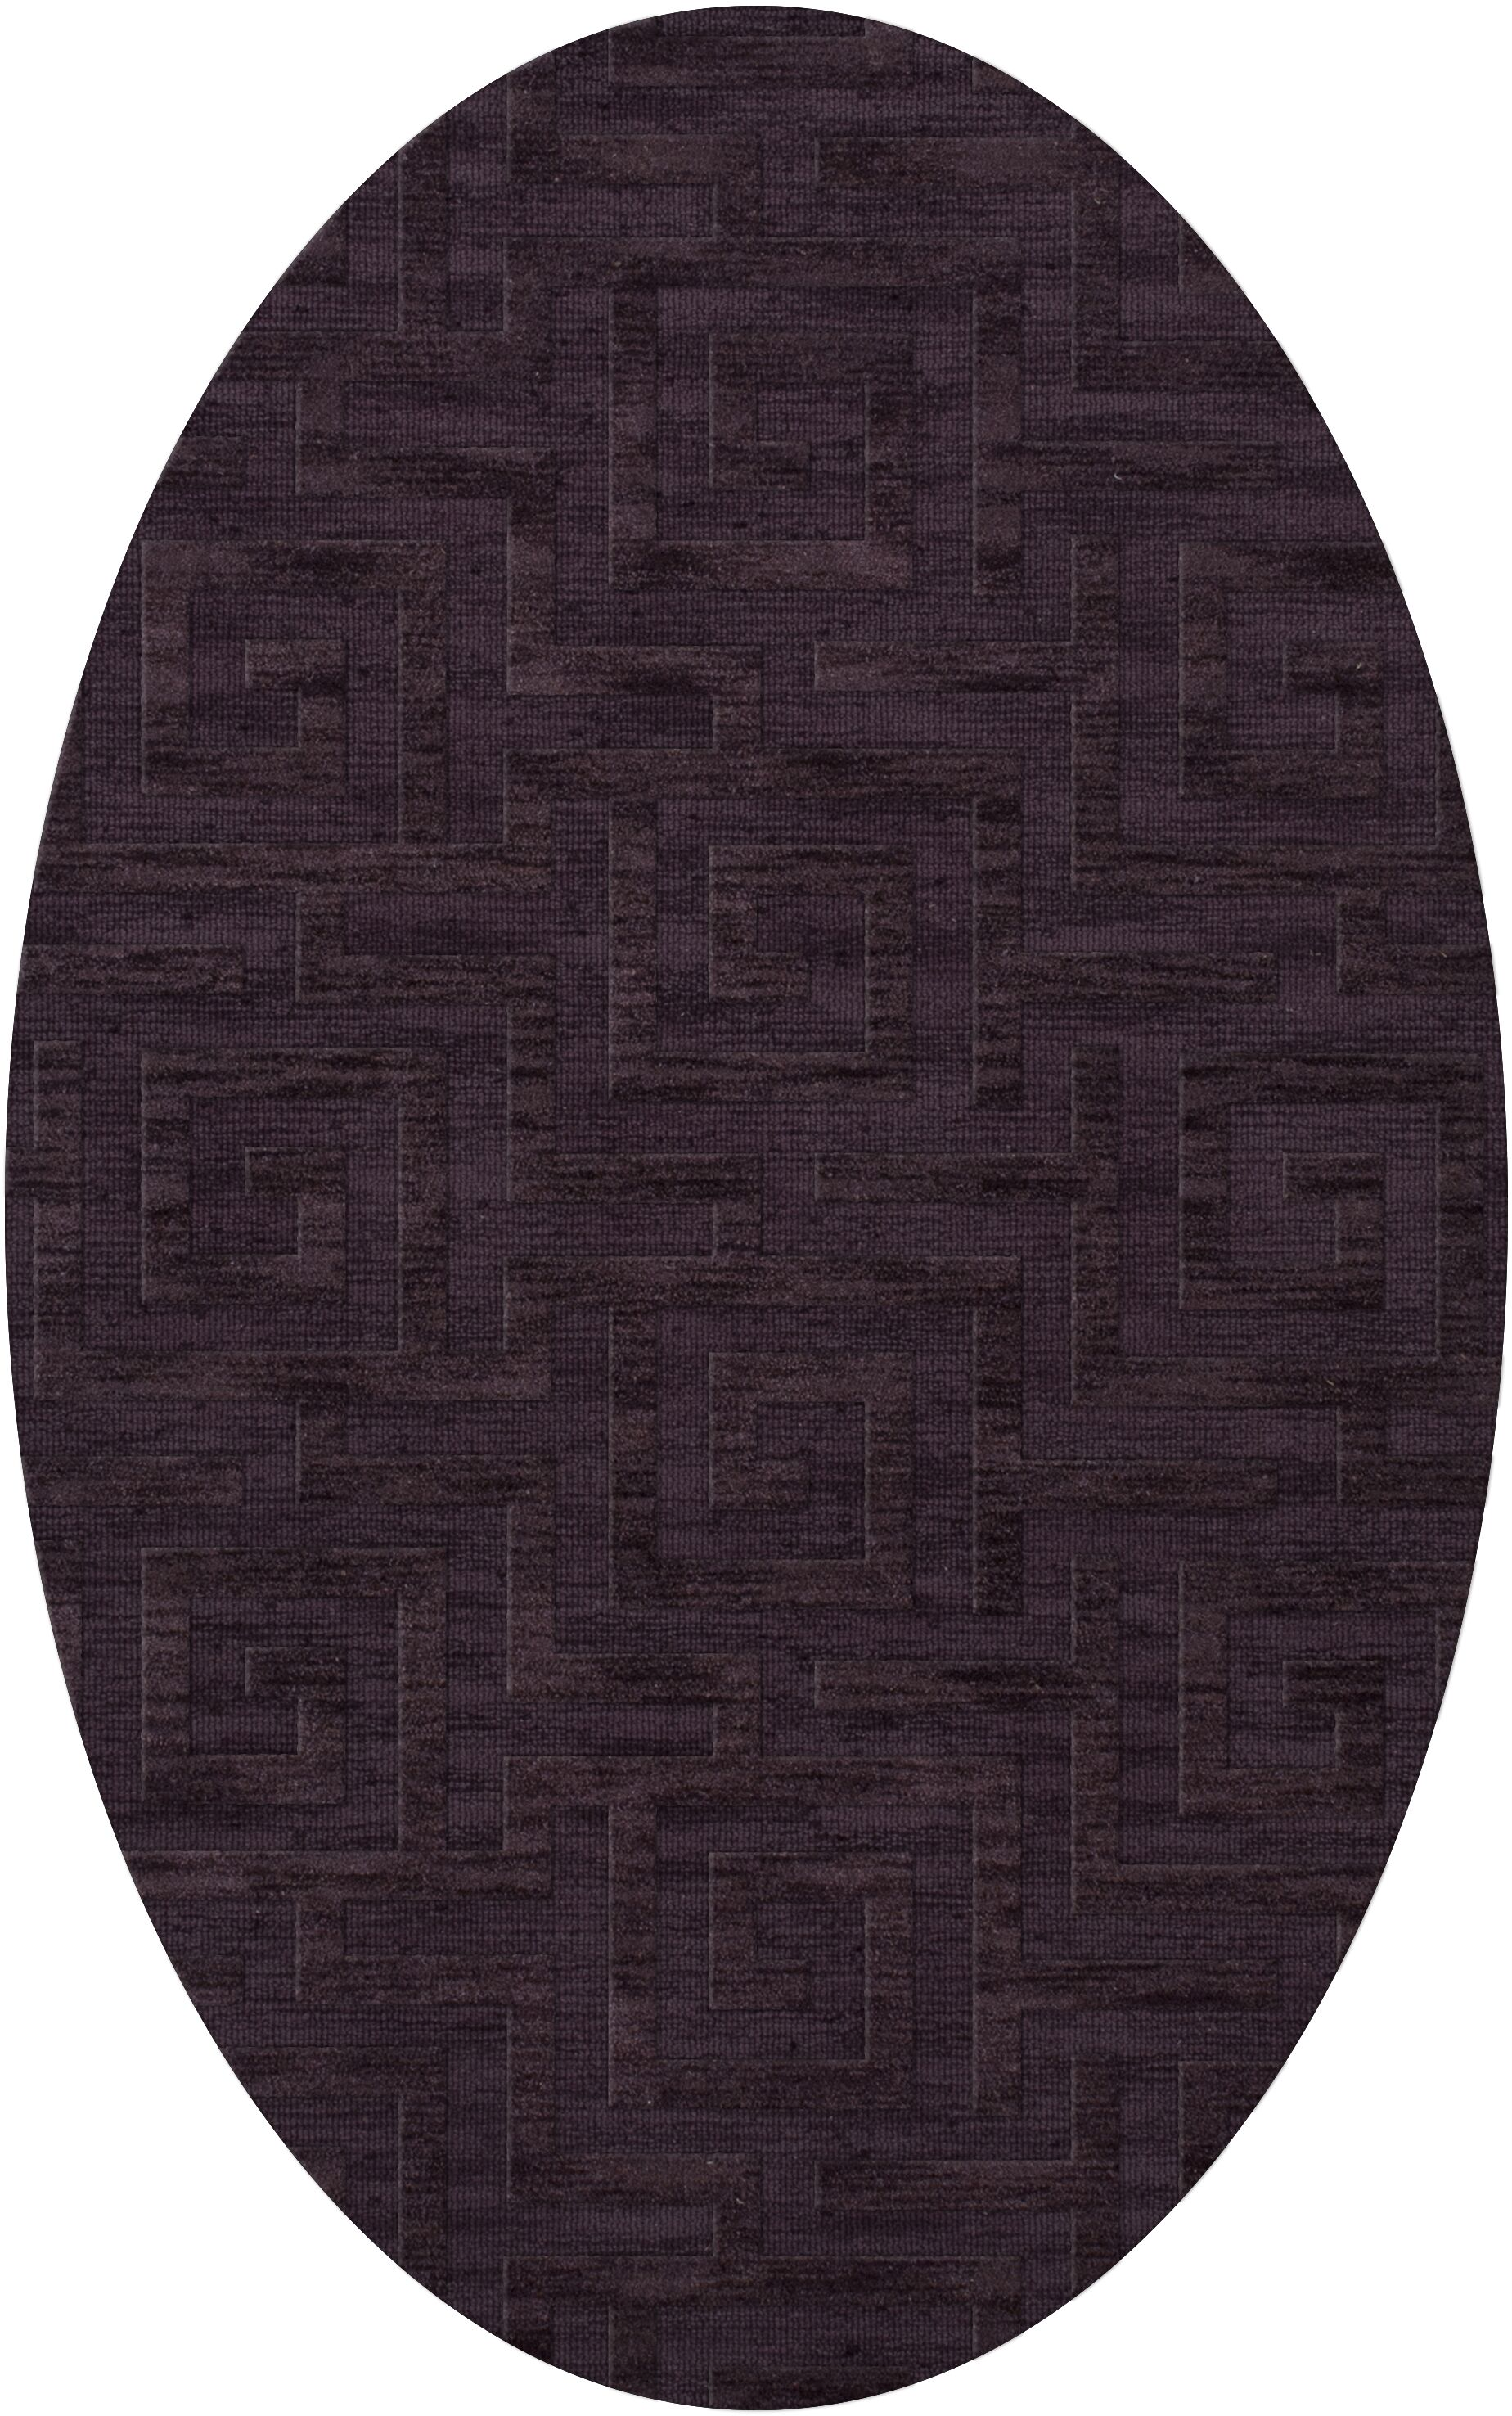 Dover Grape Ice Area Rug Rug Size: Oval 8' x 10'